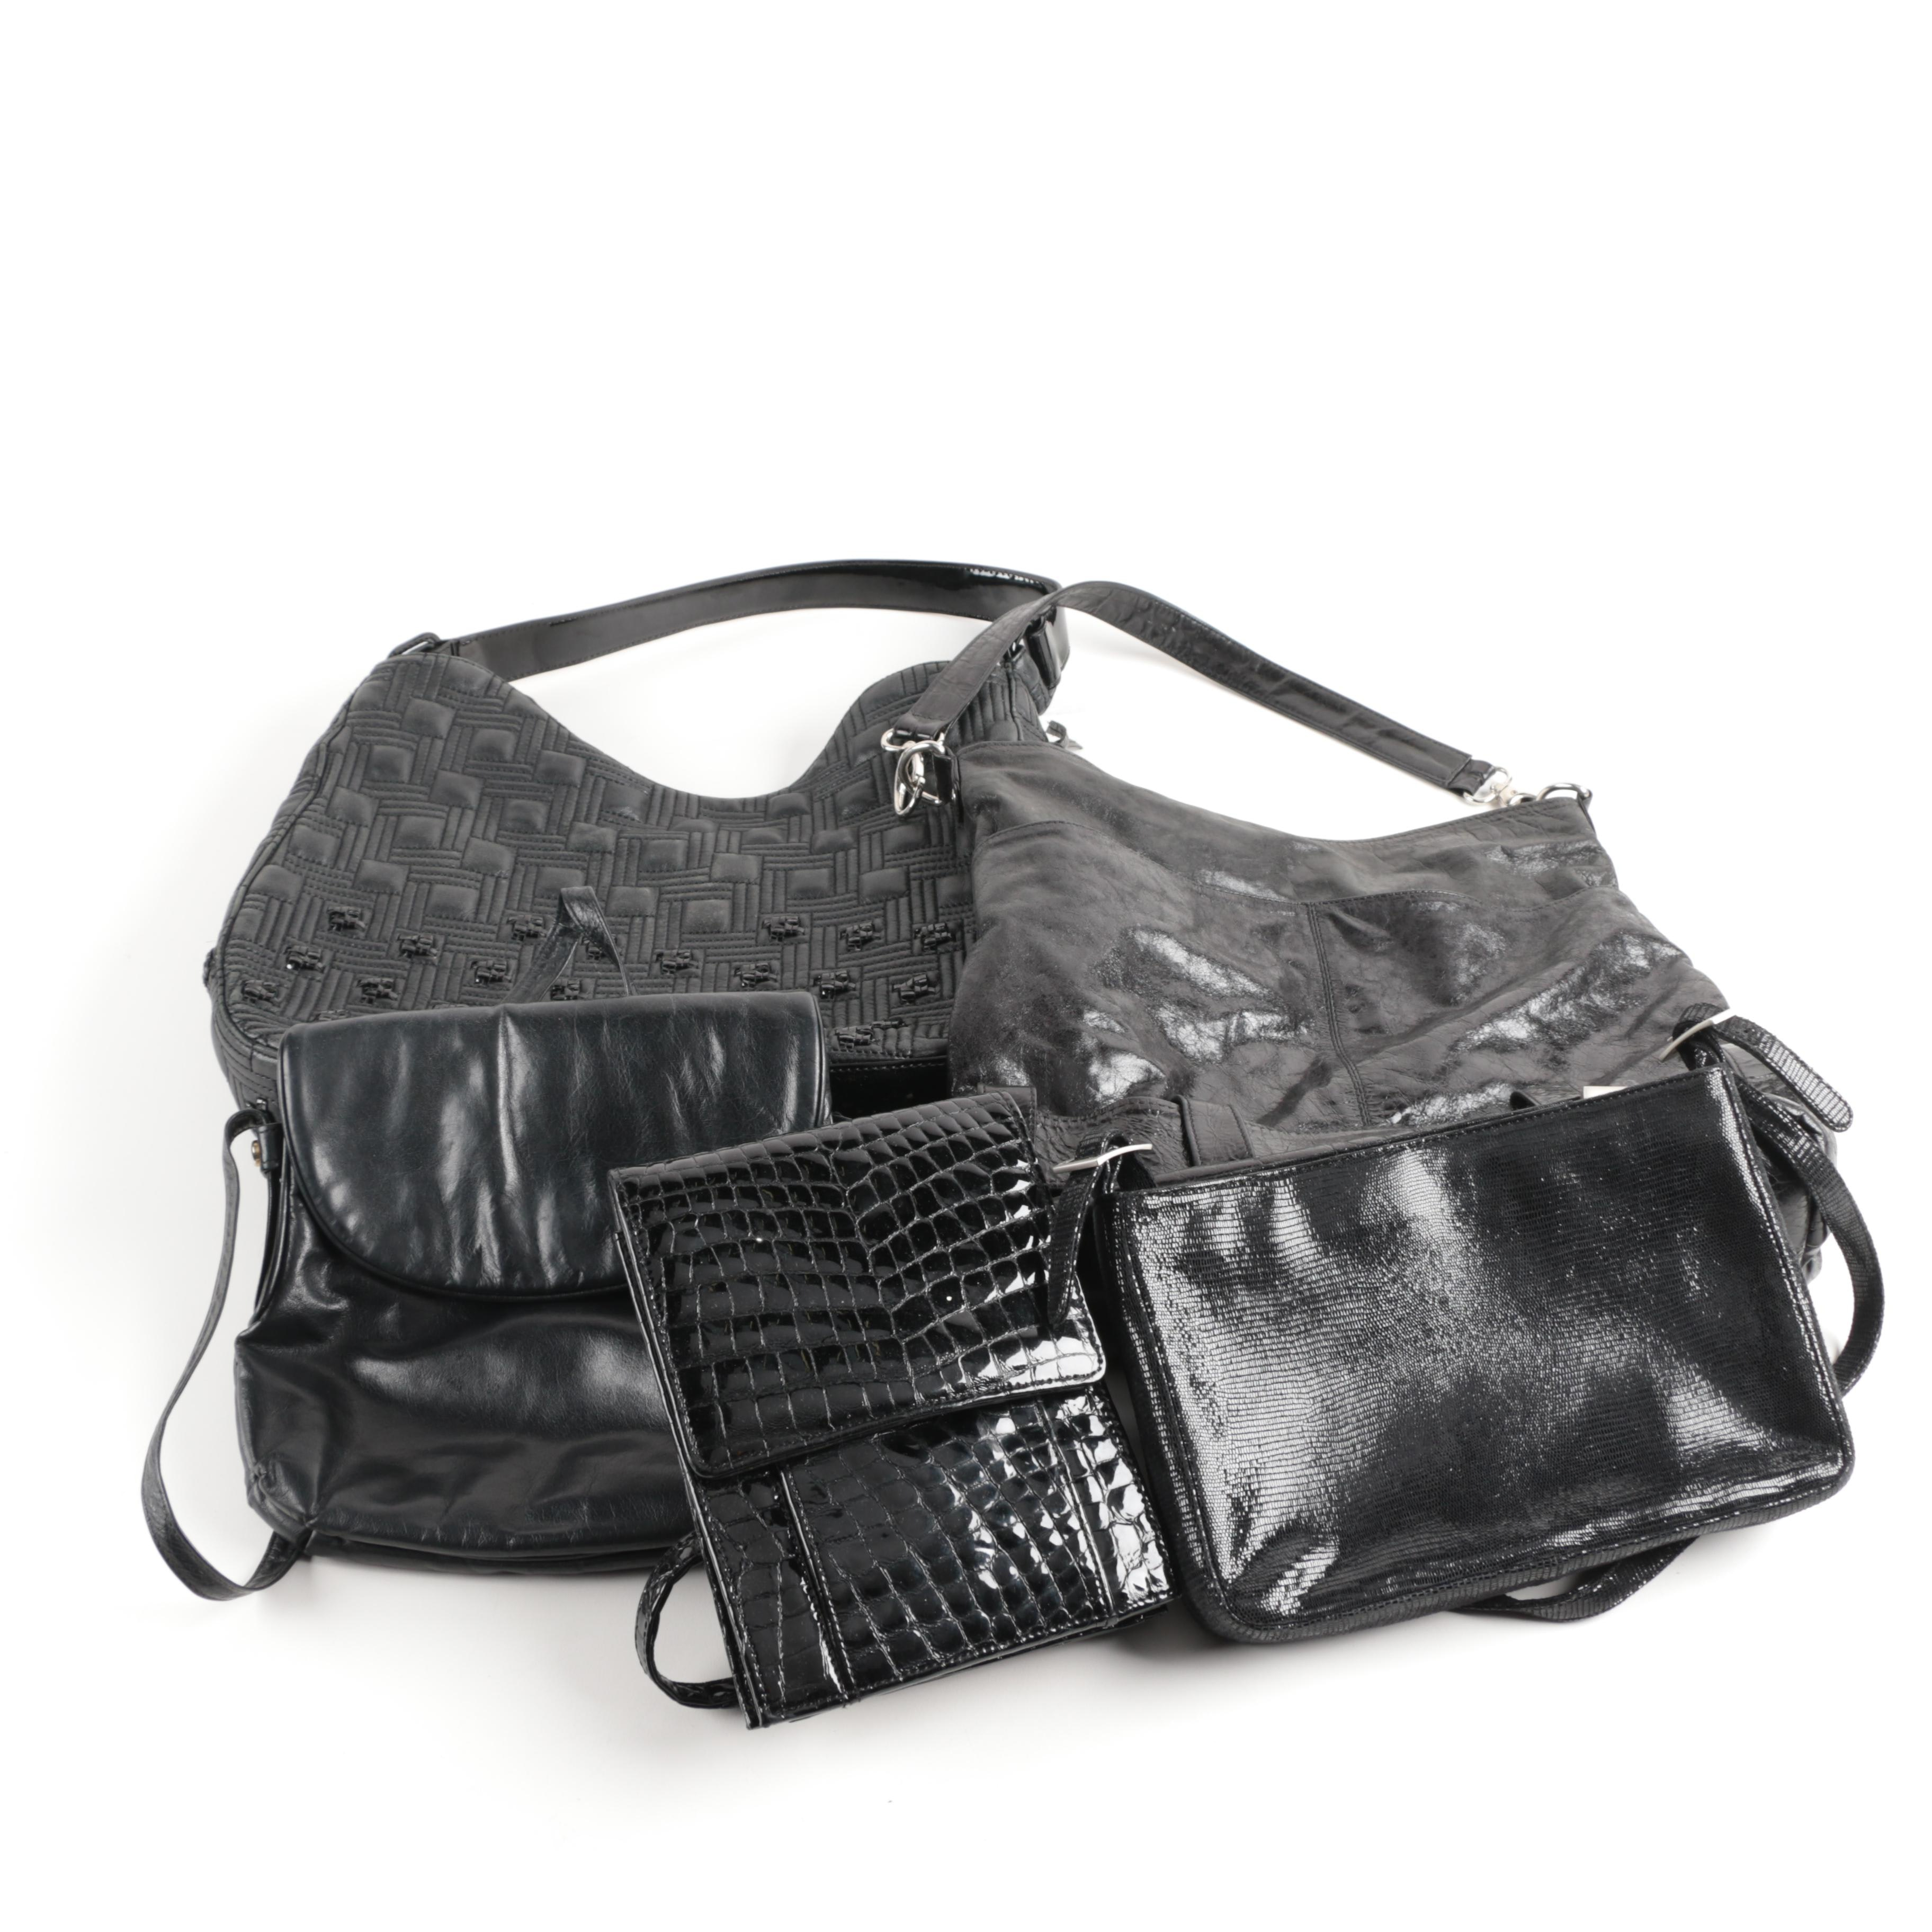 Five Black Leather Bags